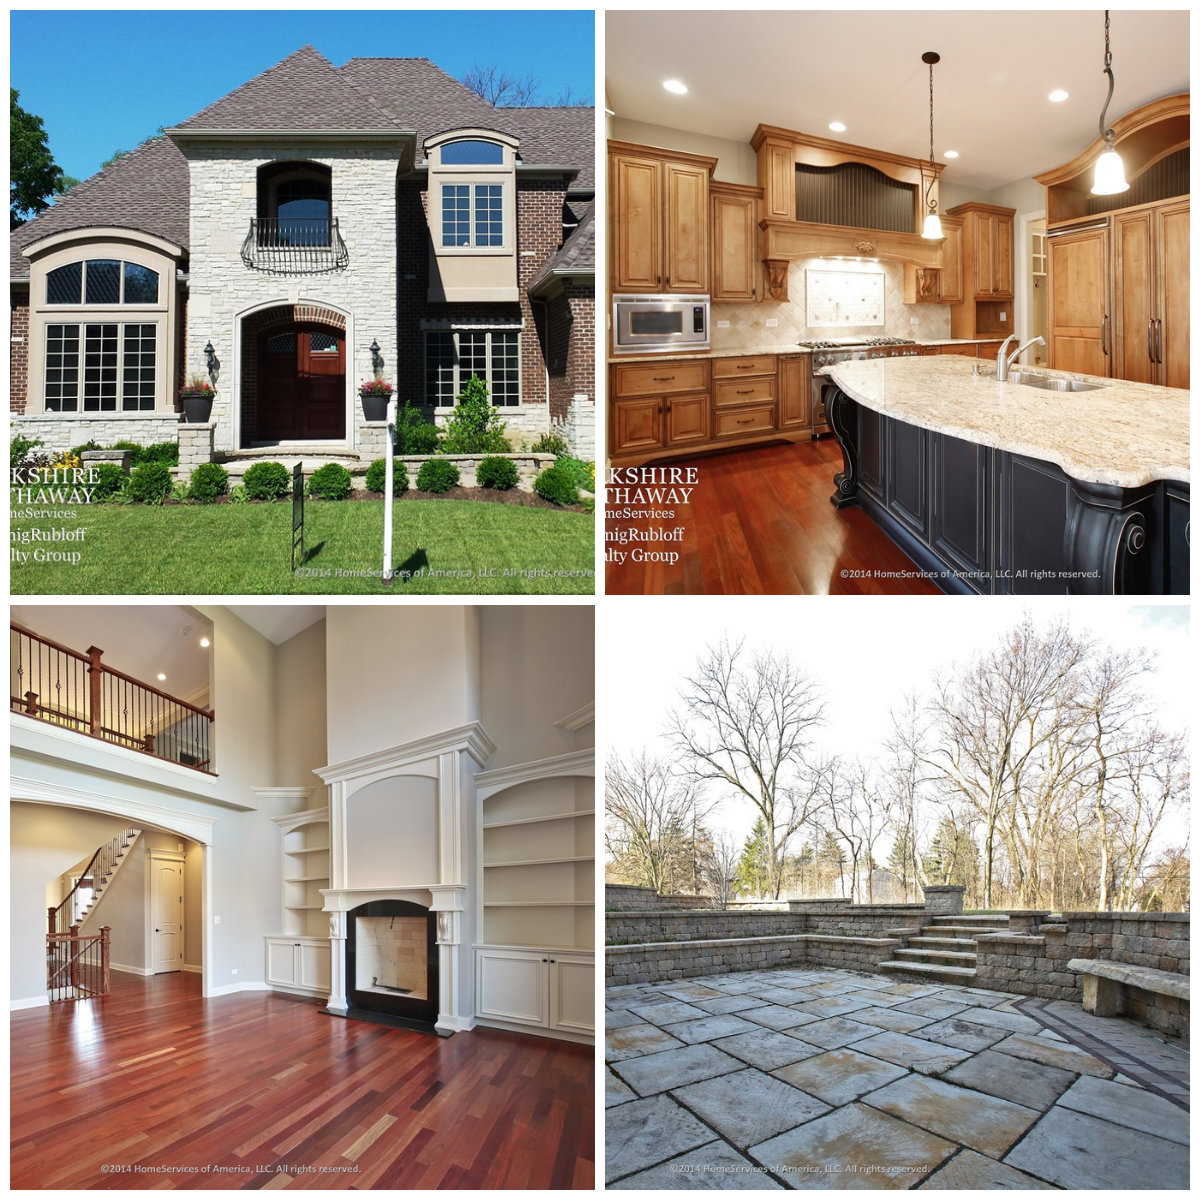 patch grove chat rooms For sale: 5 bed, 4 bath ∙ 4246 sq ft ∙ 1329 patch grove dr, frisco, tx 75033 ∙ $454,000 ∙ mls# 13853719 ∙ priced to sell frisco isd beautiful and spacious north facing house with gorgeous real .